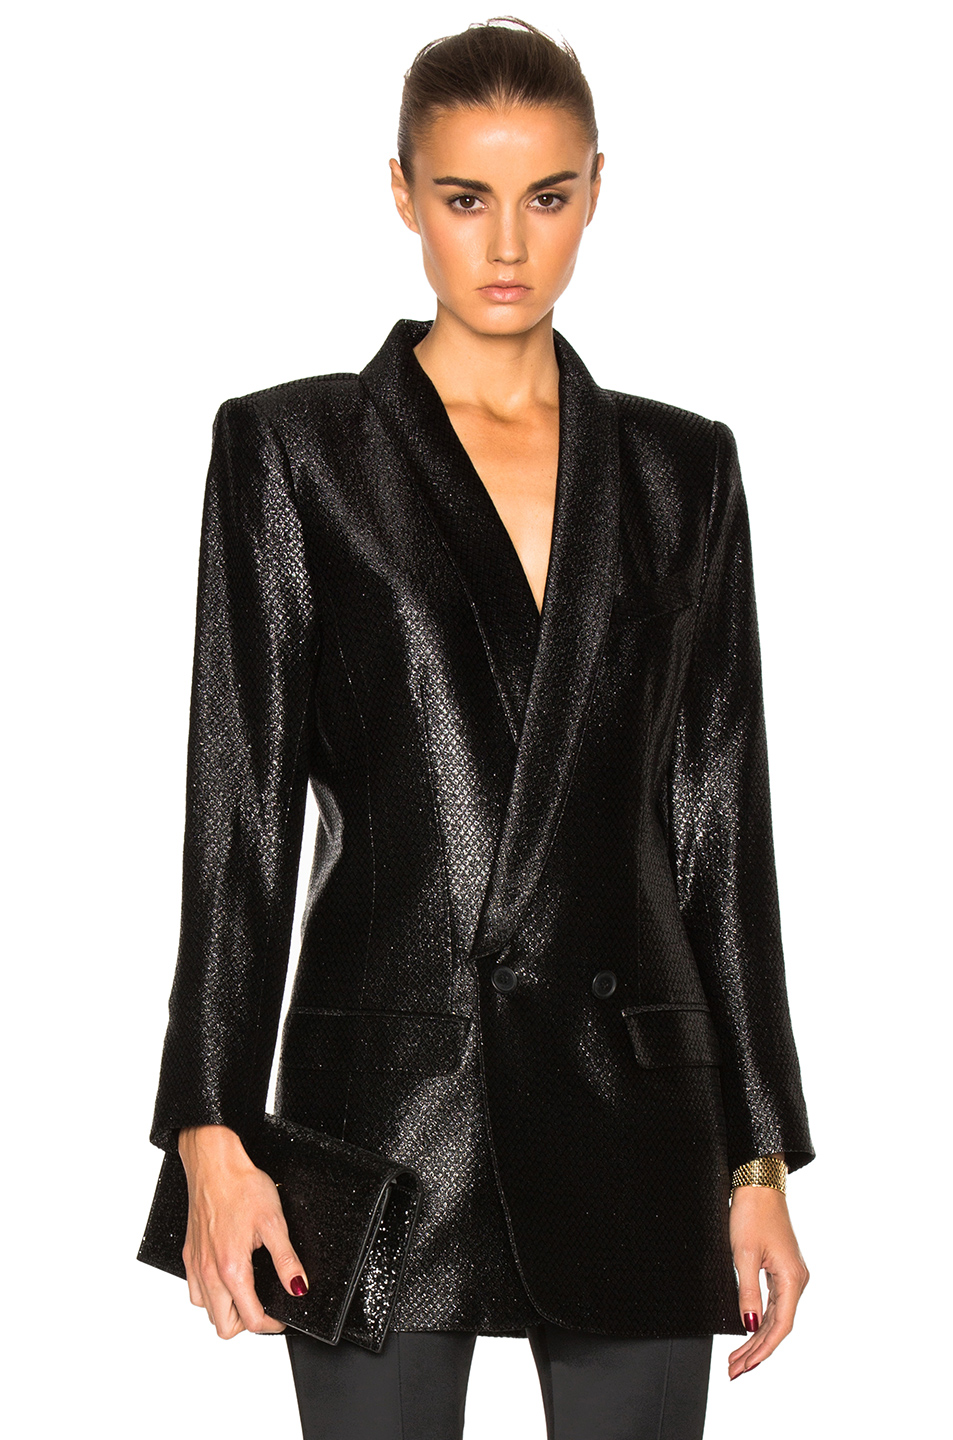 Smythe Oversized Blazer in Black,Metallics